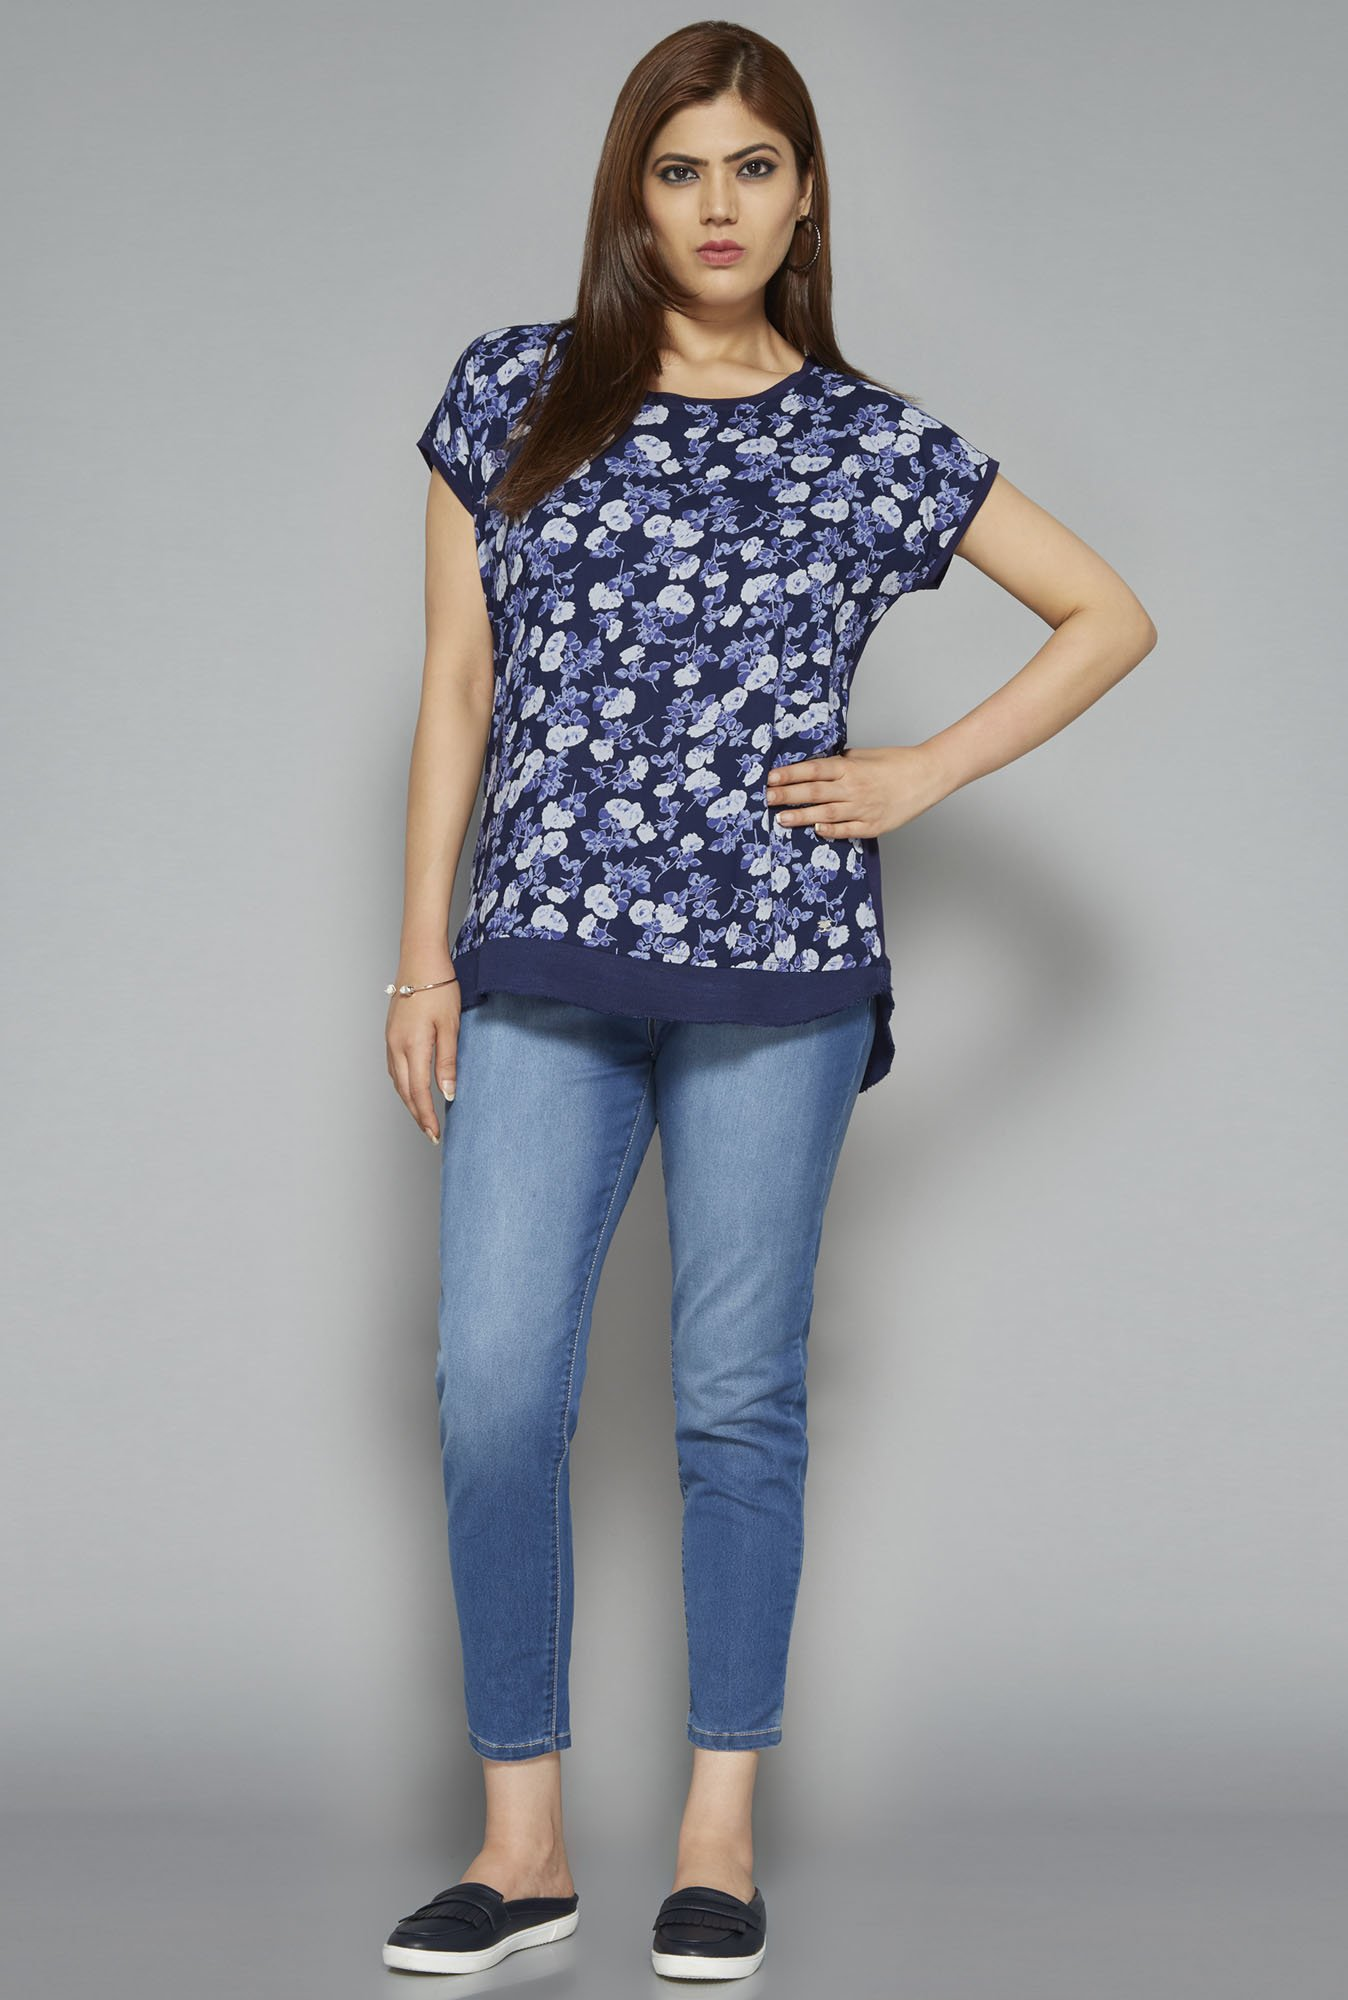 Sassy Soda by Westside Navy Carla Top